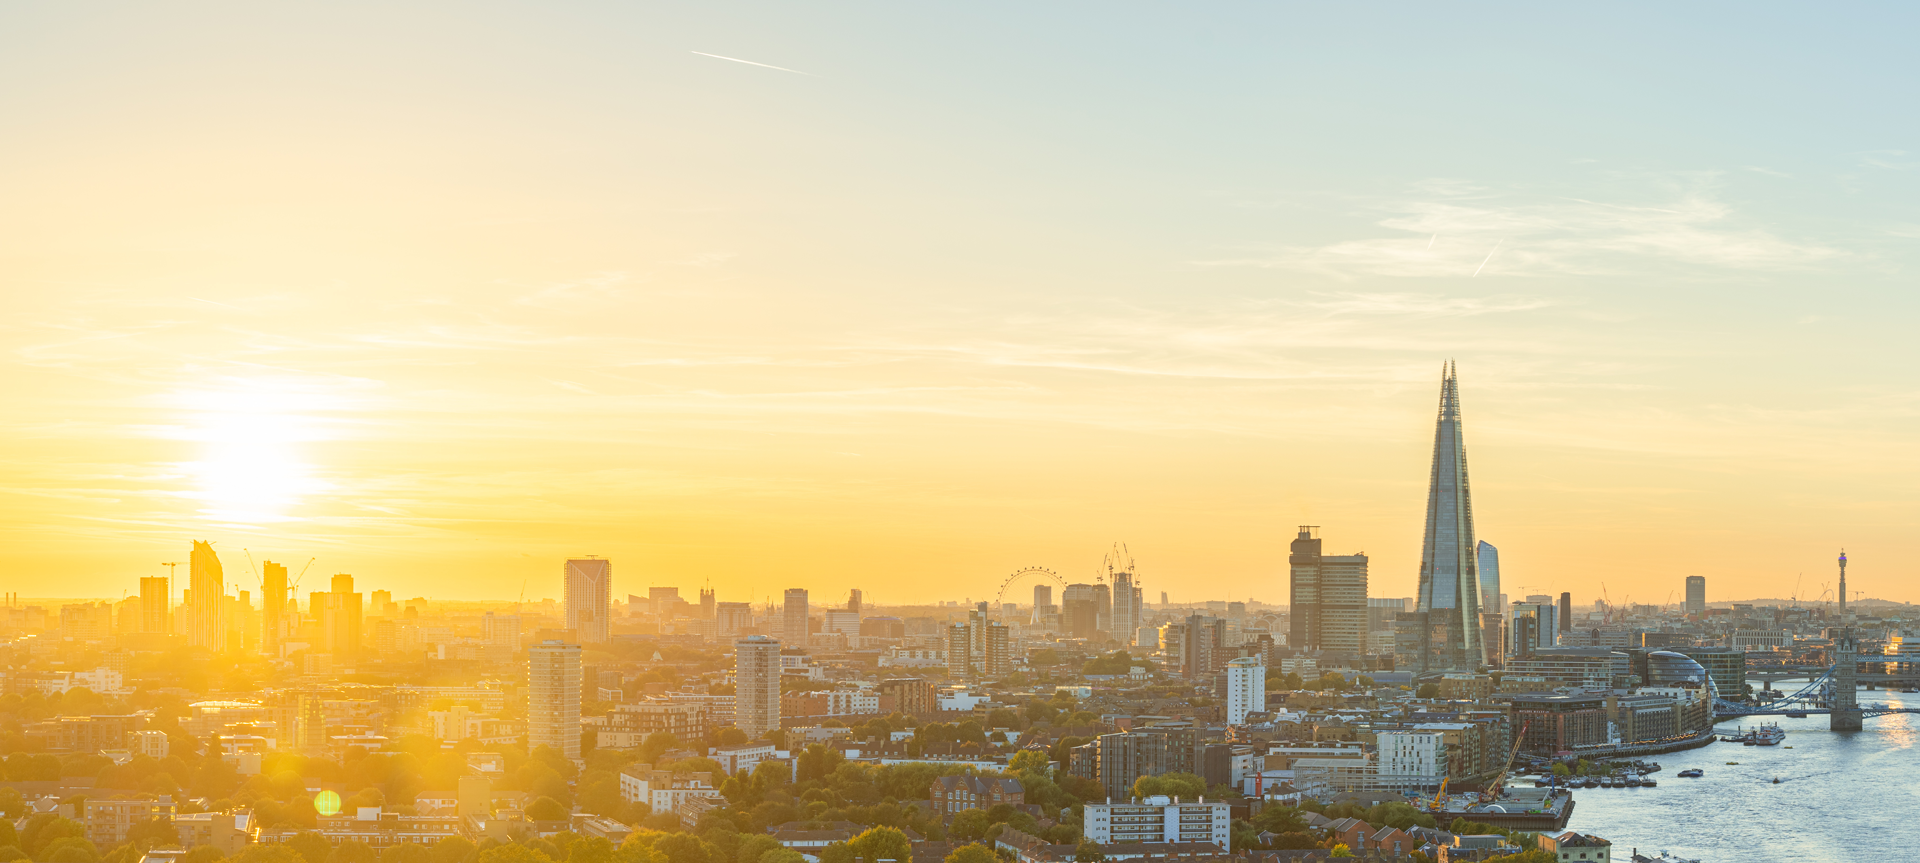 Sunset view of London looking west